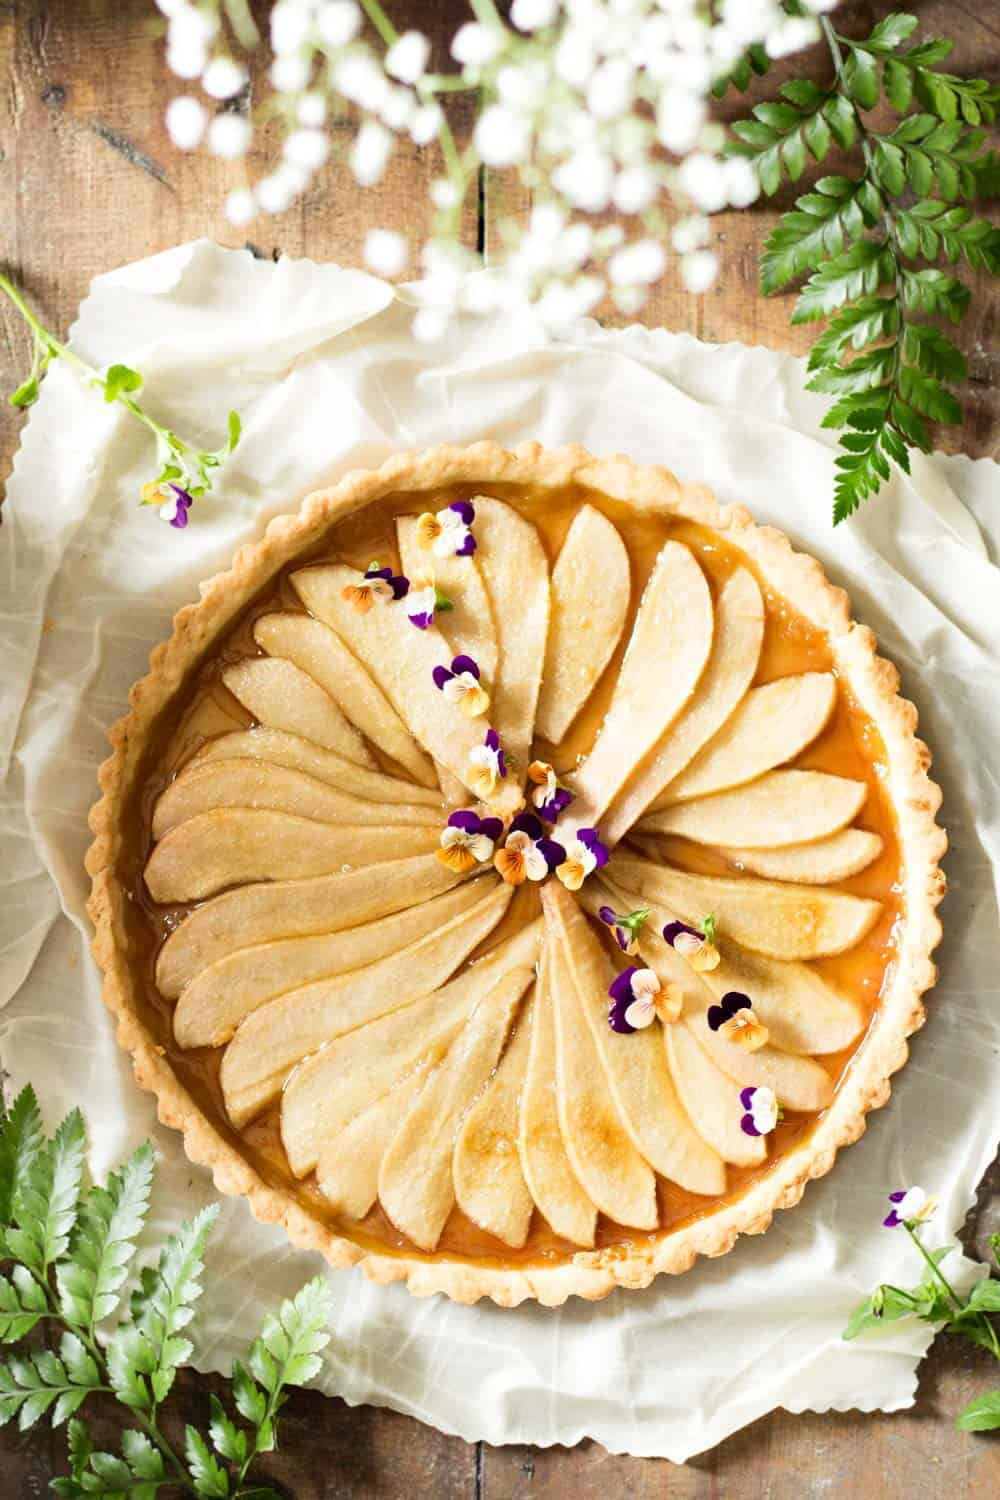 Simple Pear Tart